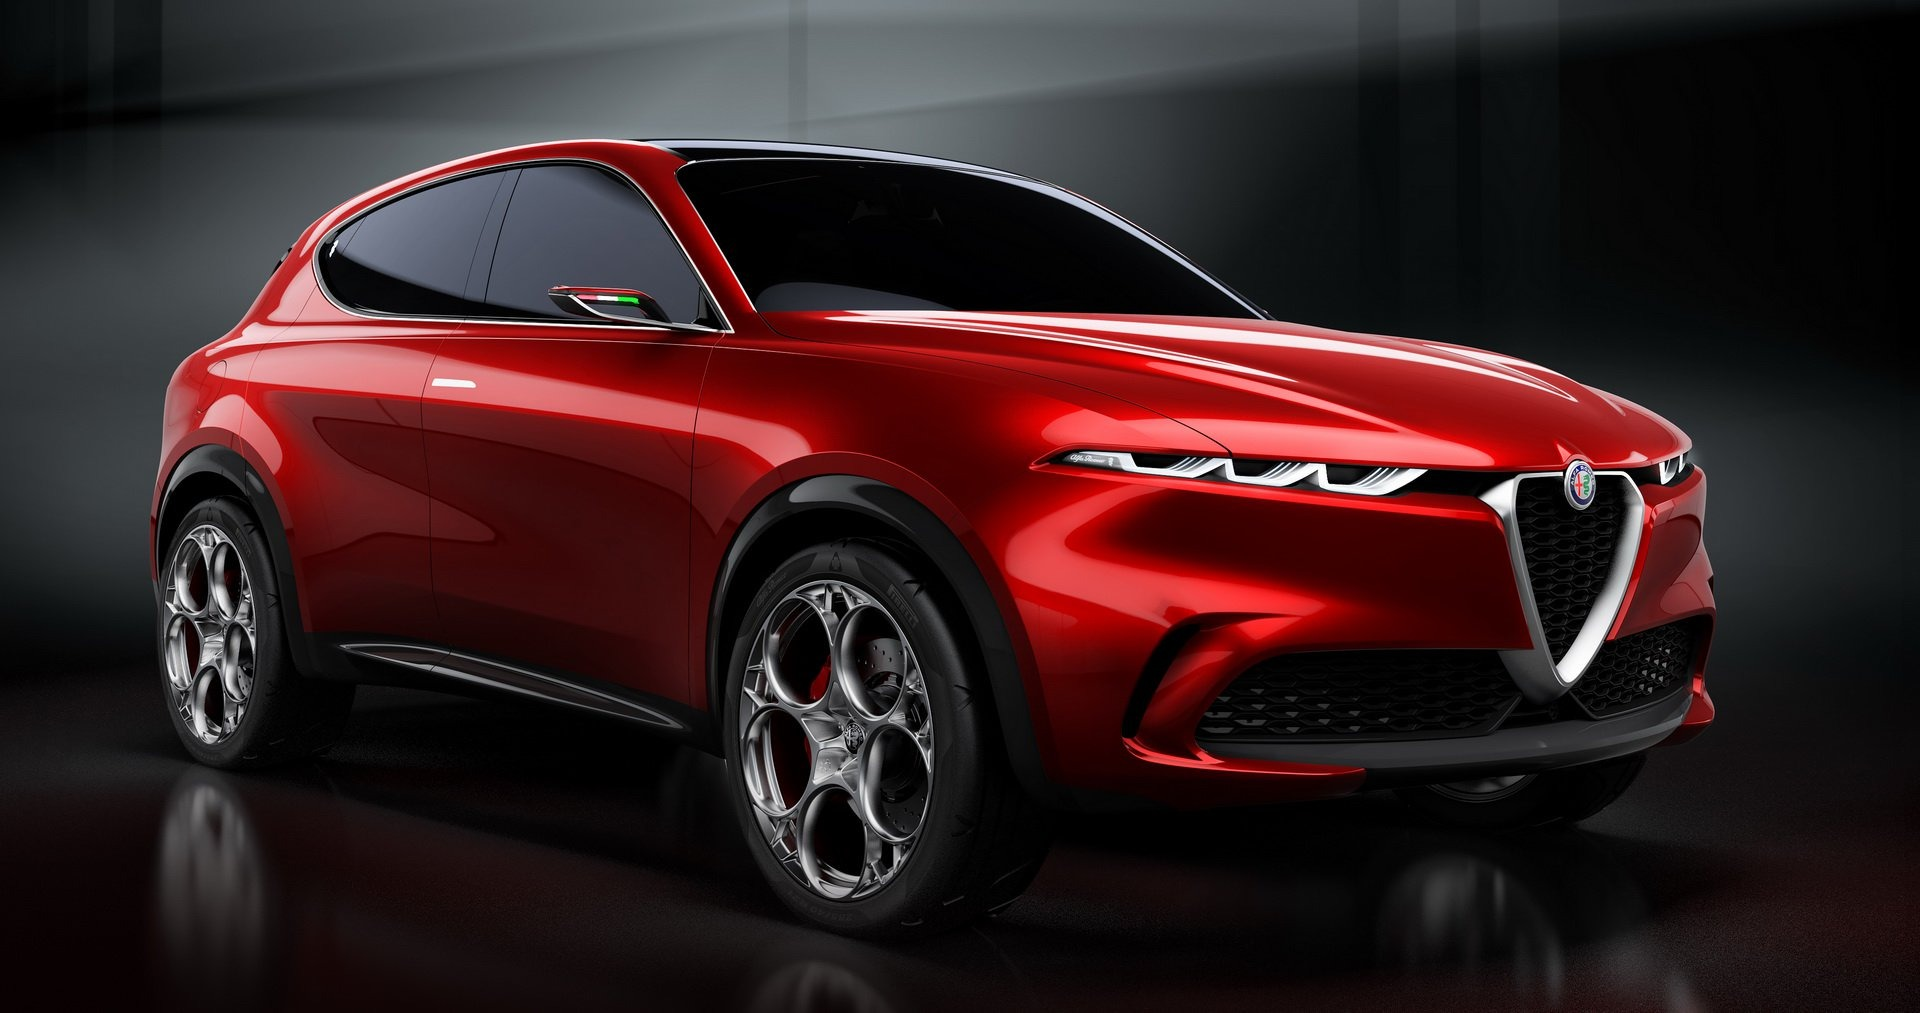 The final production version of the Alfa Romeo Tonale will hit the spotlight in September 2021, and sales in Europe will start just two months after that, the automaker reports.